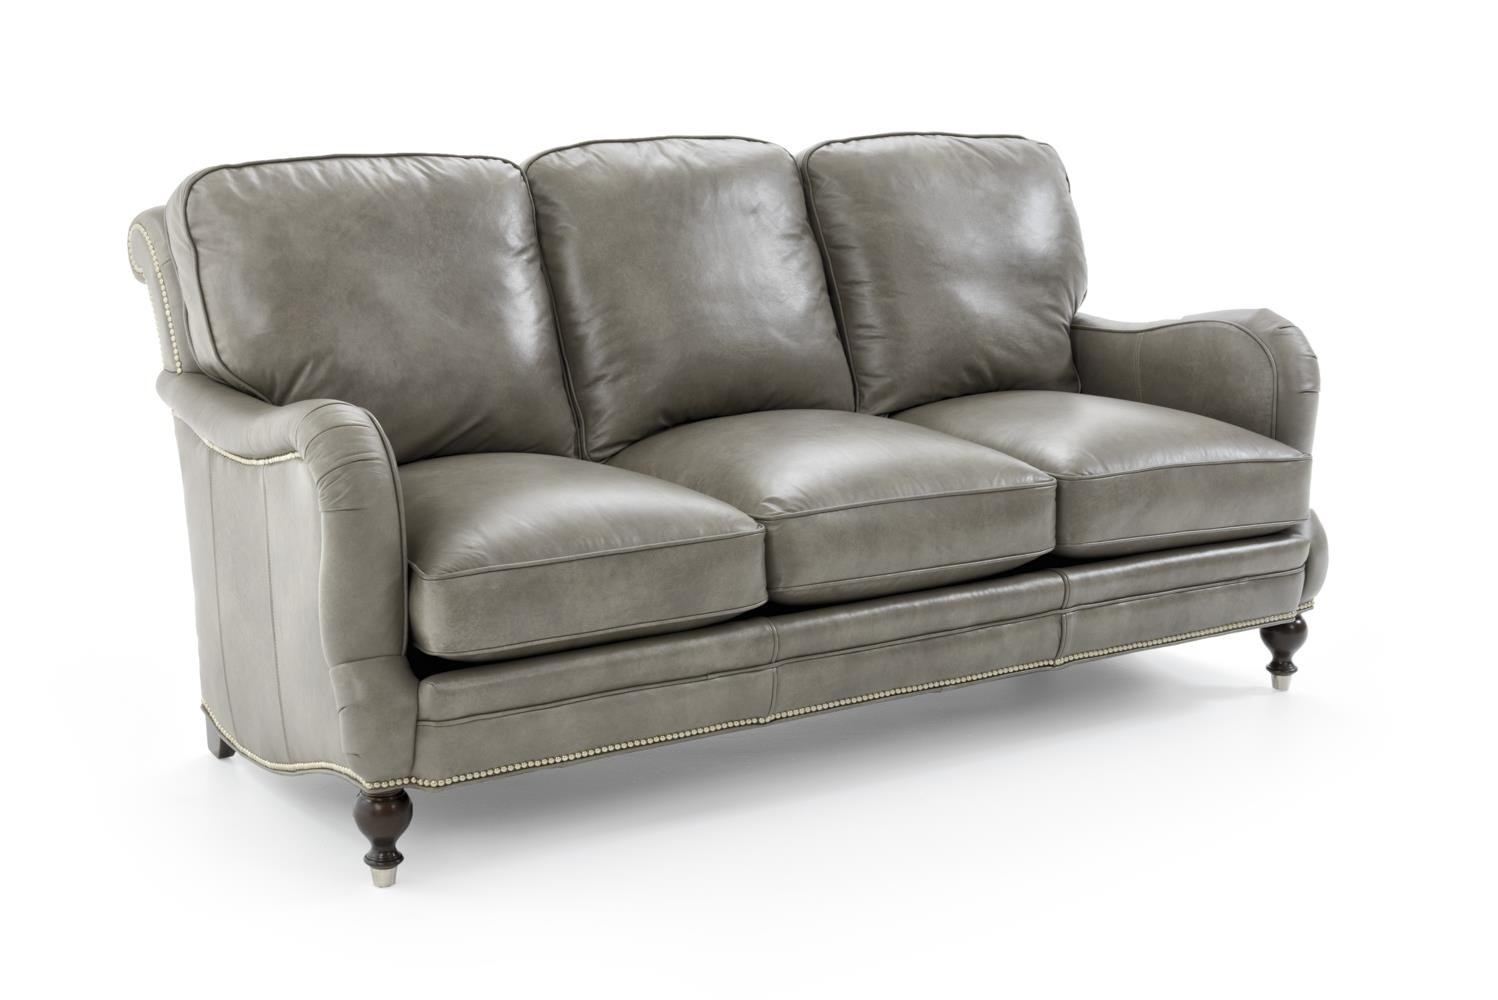 Whittemore-Sherrill 239 Sofa - Item Number: 239-06 PANHANDLE DOVE